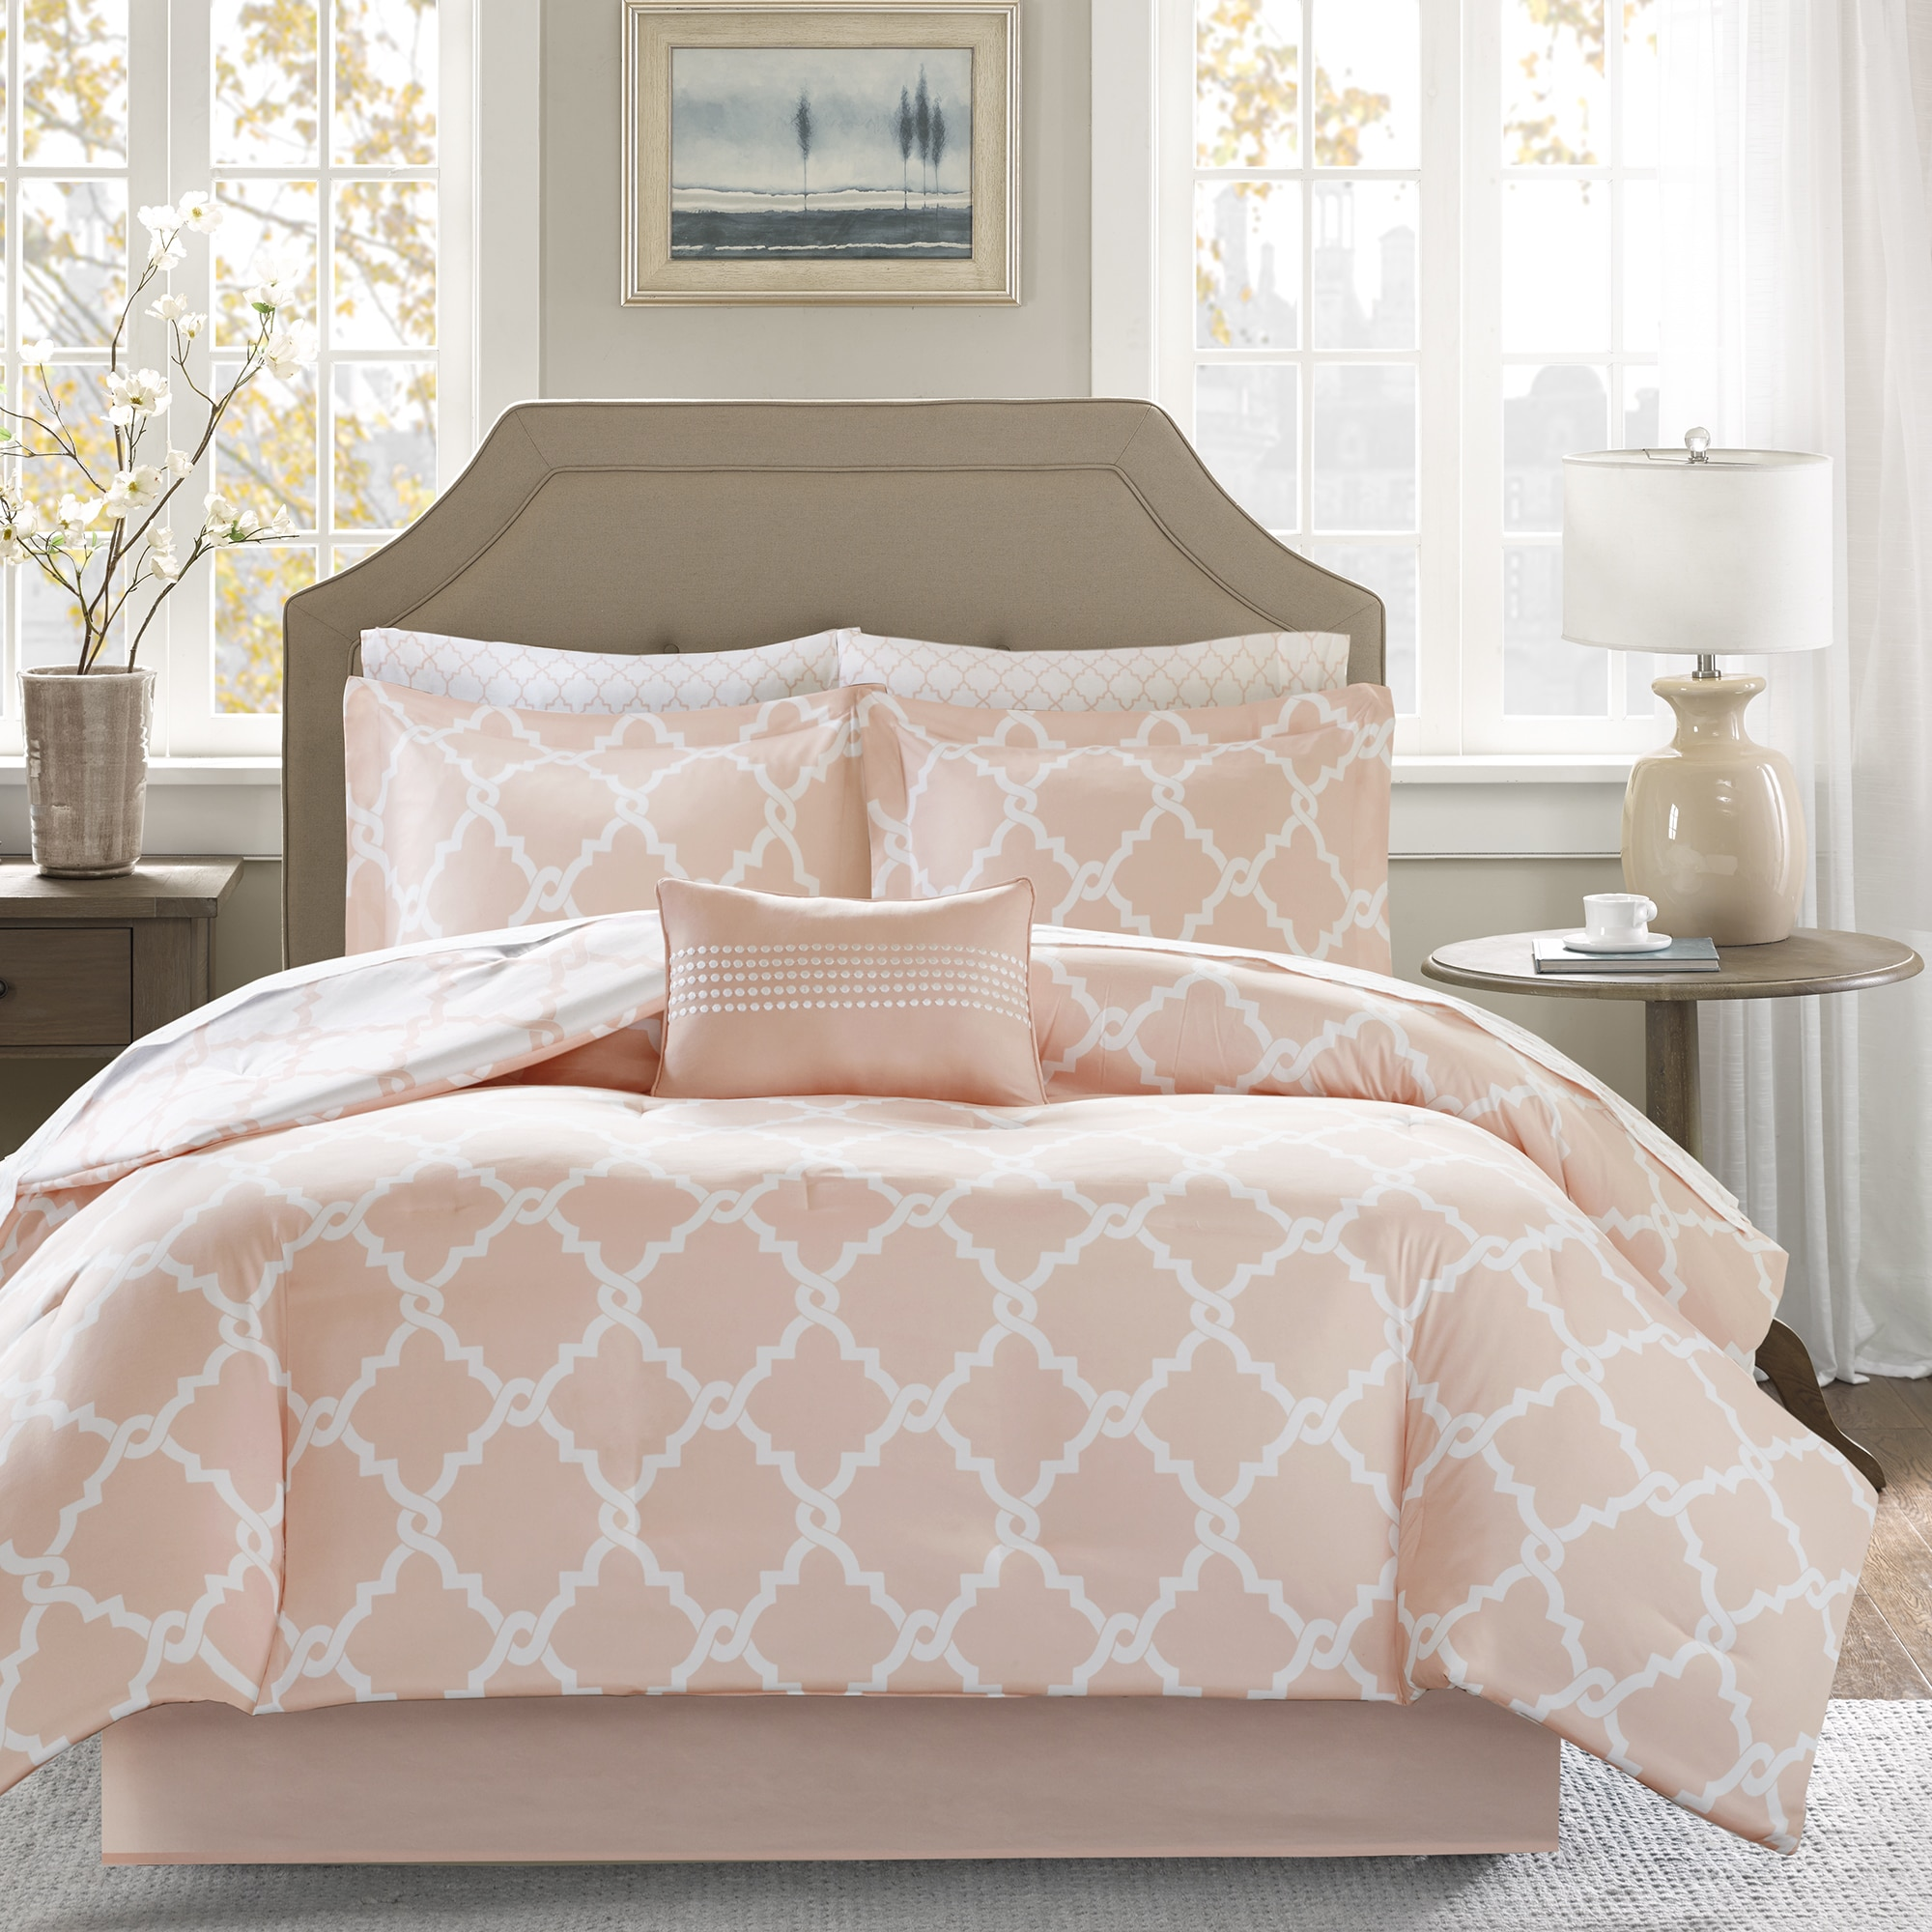 Pink, Victorian Bed-in-a-Bag   Find Great Bedding Deals ...